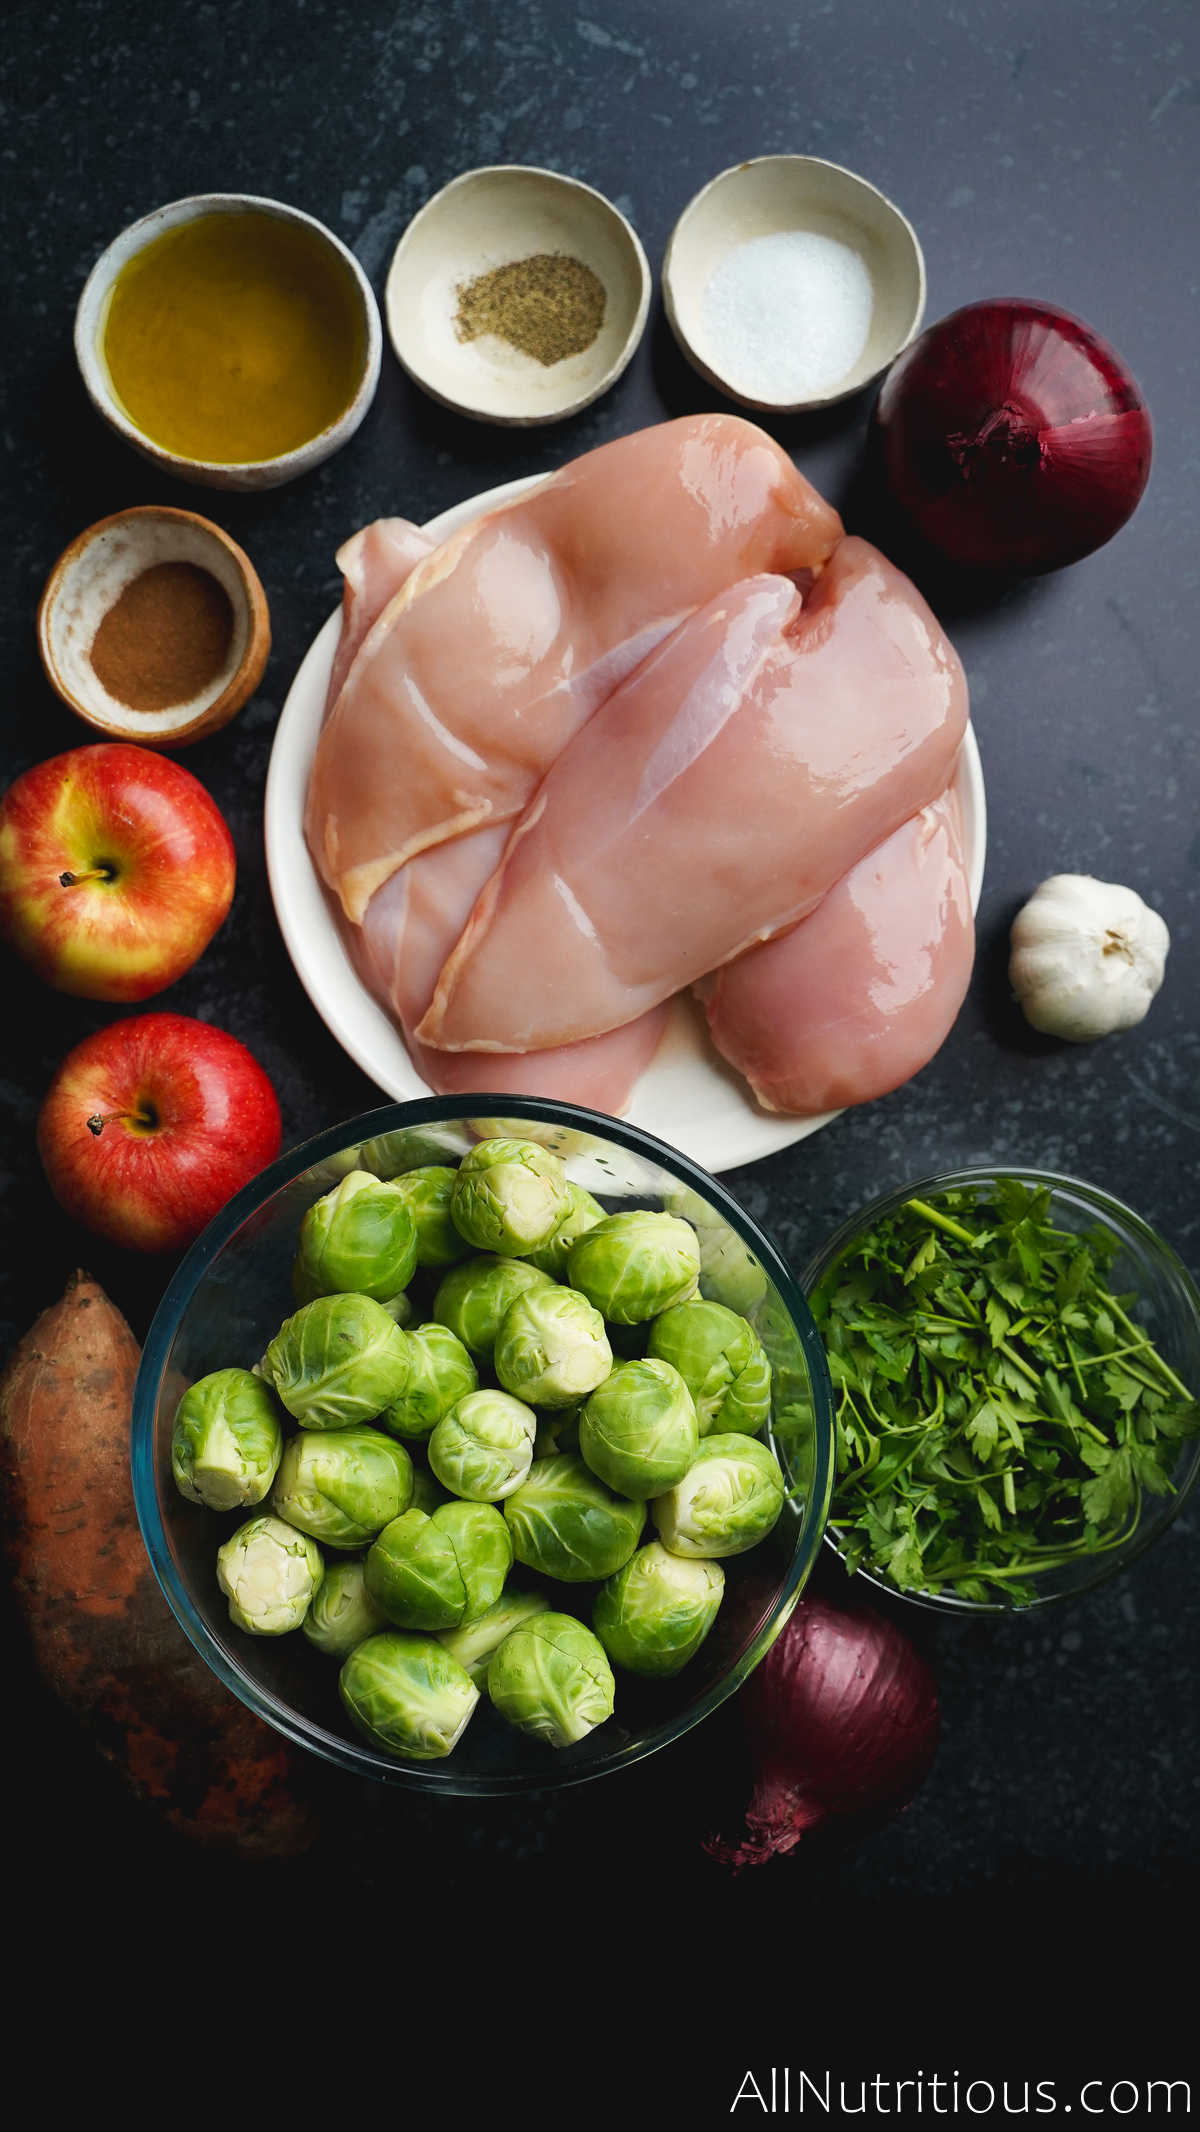 raw chicken, brussels sprouts and ingredients